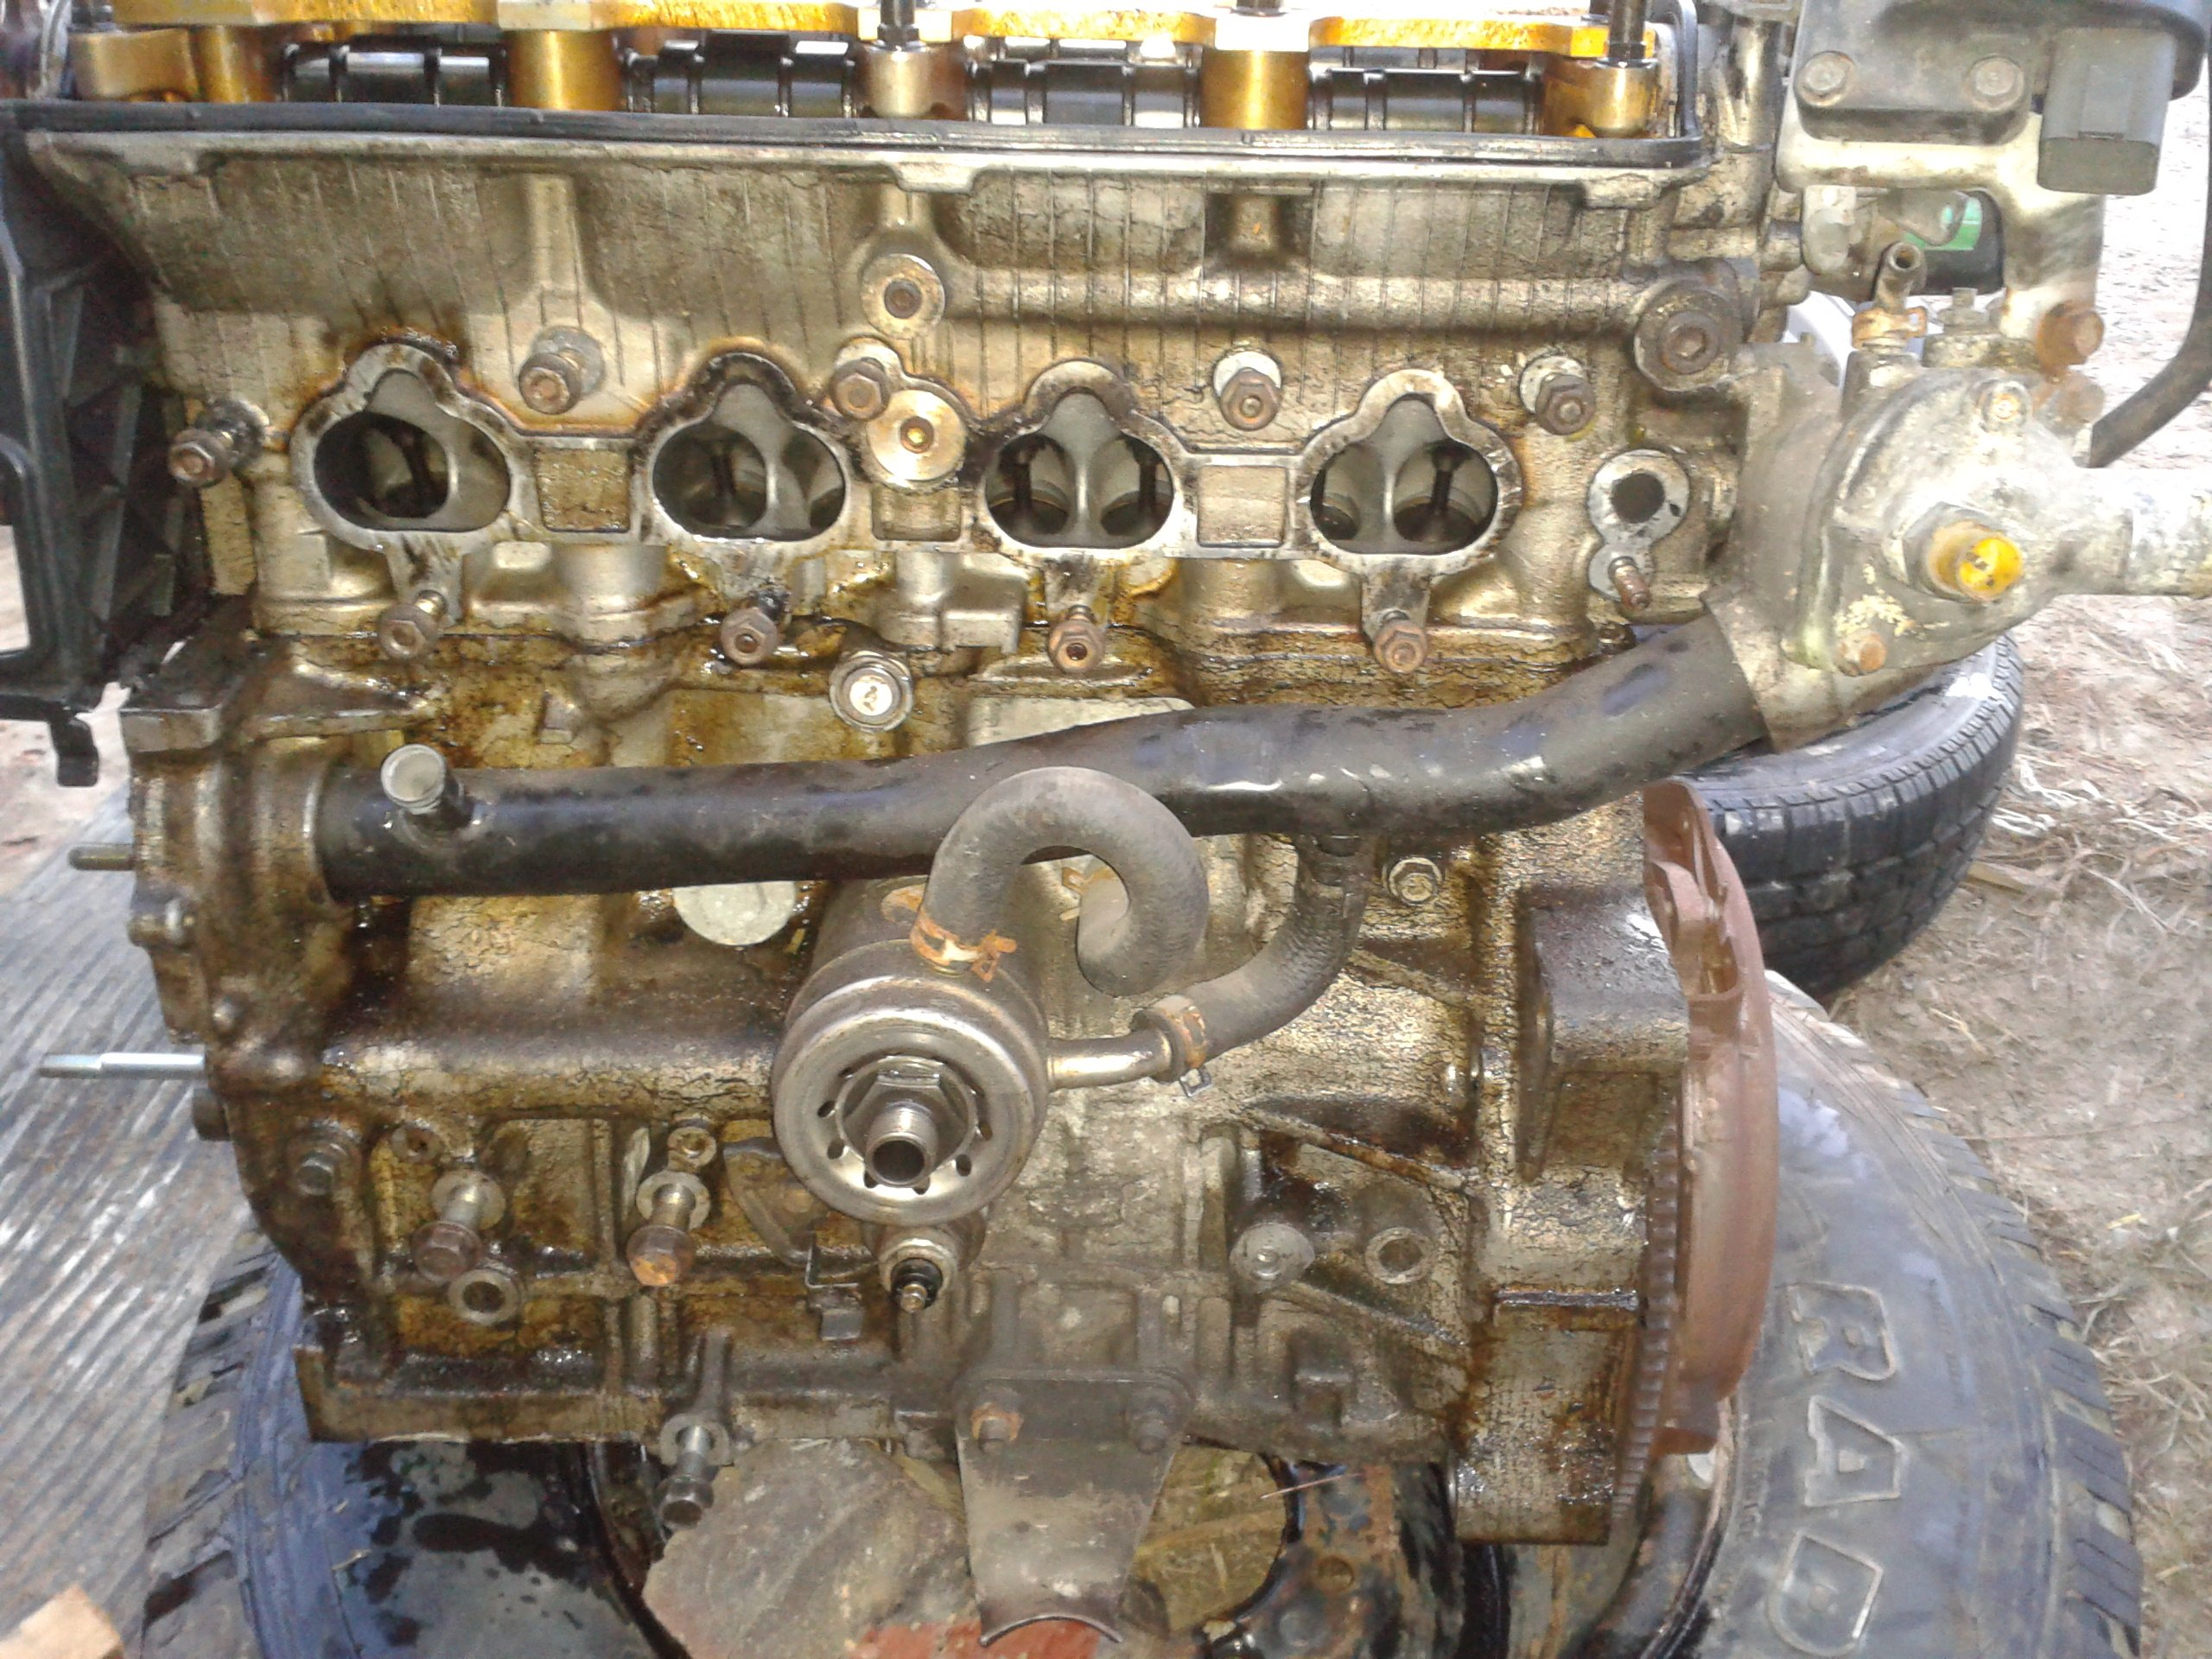 I have a h22a4 98 honda prelude with spun bearing (the ... H A Wiring Diagram on dohc diagram, d15b7 diagram, f 22 diagram, b18c1 diagram, d16y8 diagram, b18b1 diagram, vtec diagram, honda diagram, k24a1 diagram,